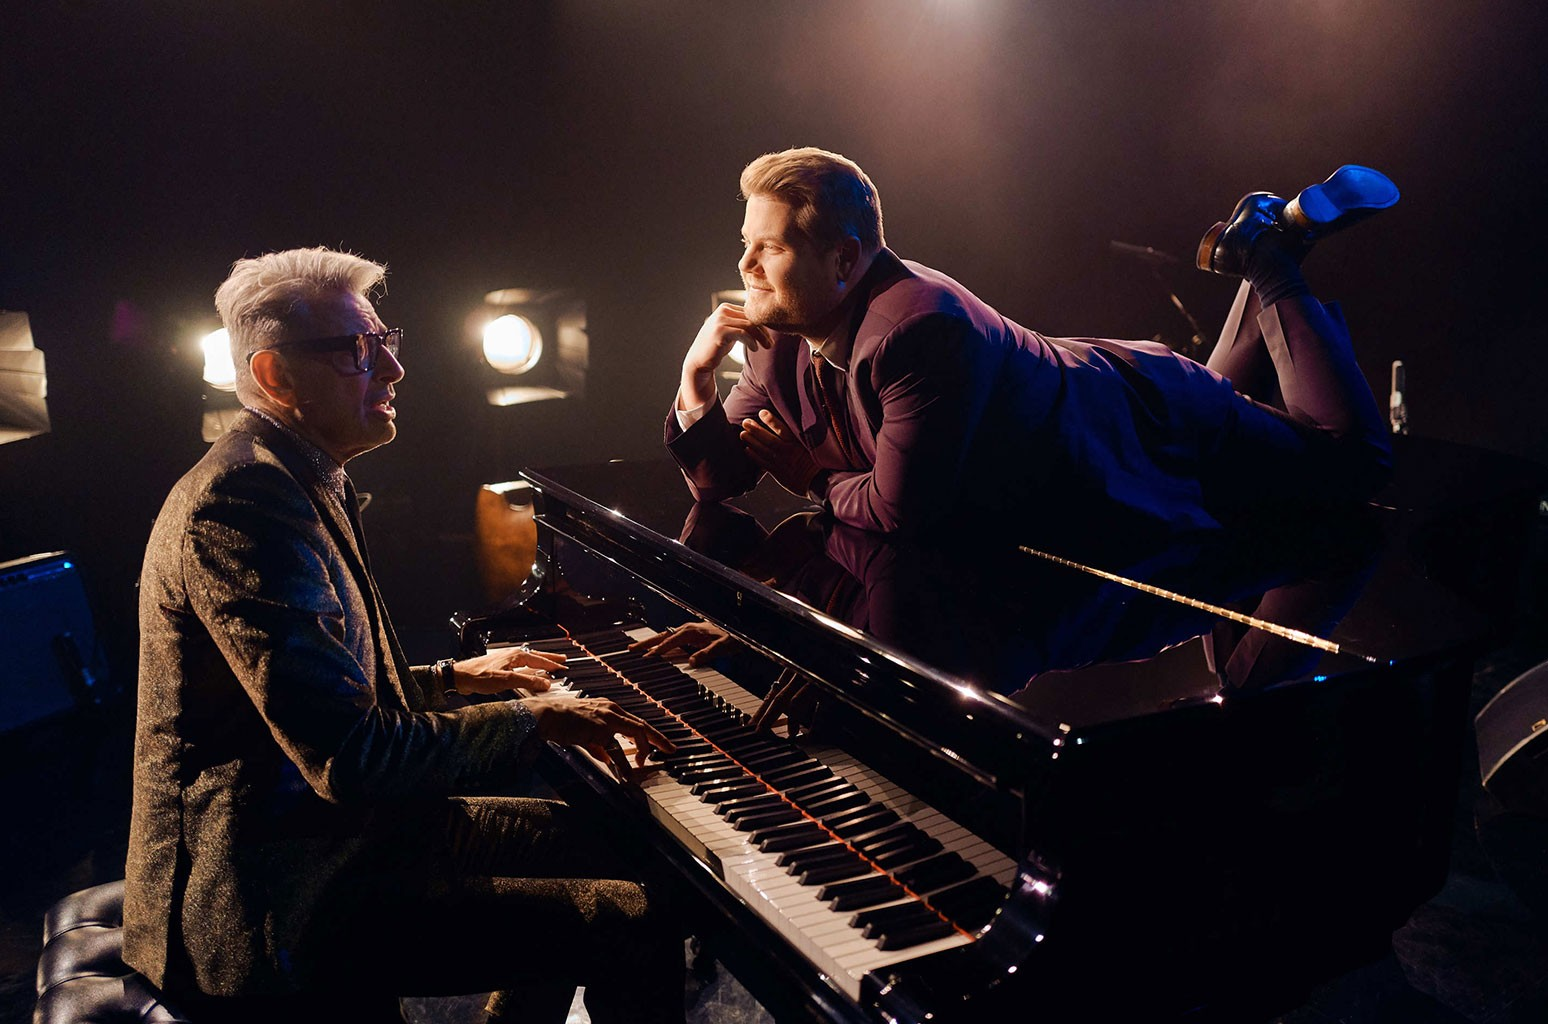 Jeff Goldblum performs in a sketch with James Corden during The Late Late Show with James Corden on Dec. 3, 2018.